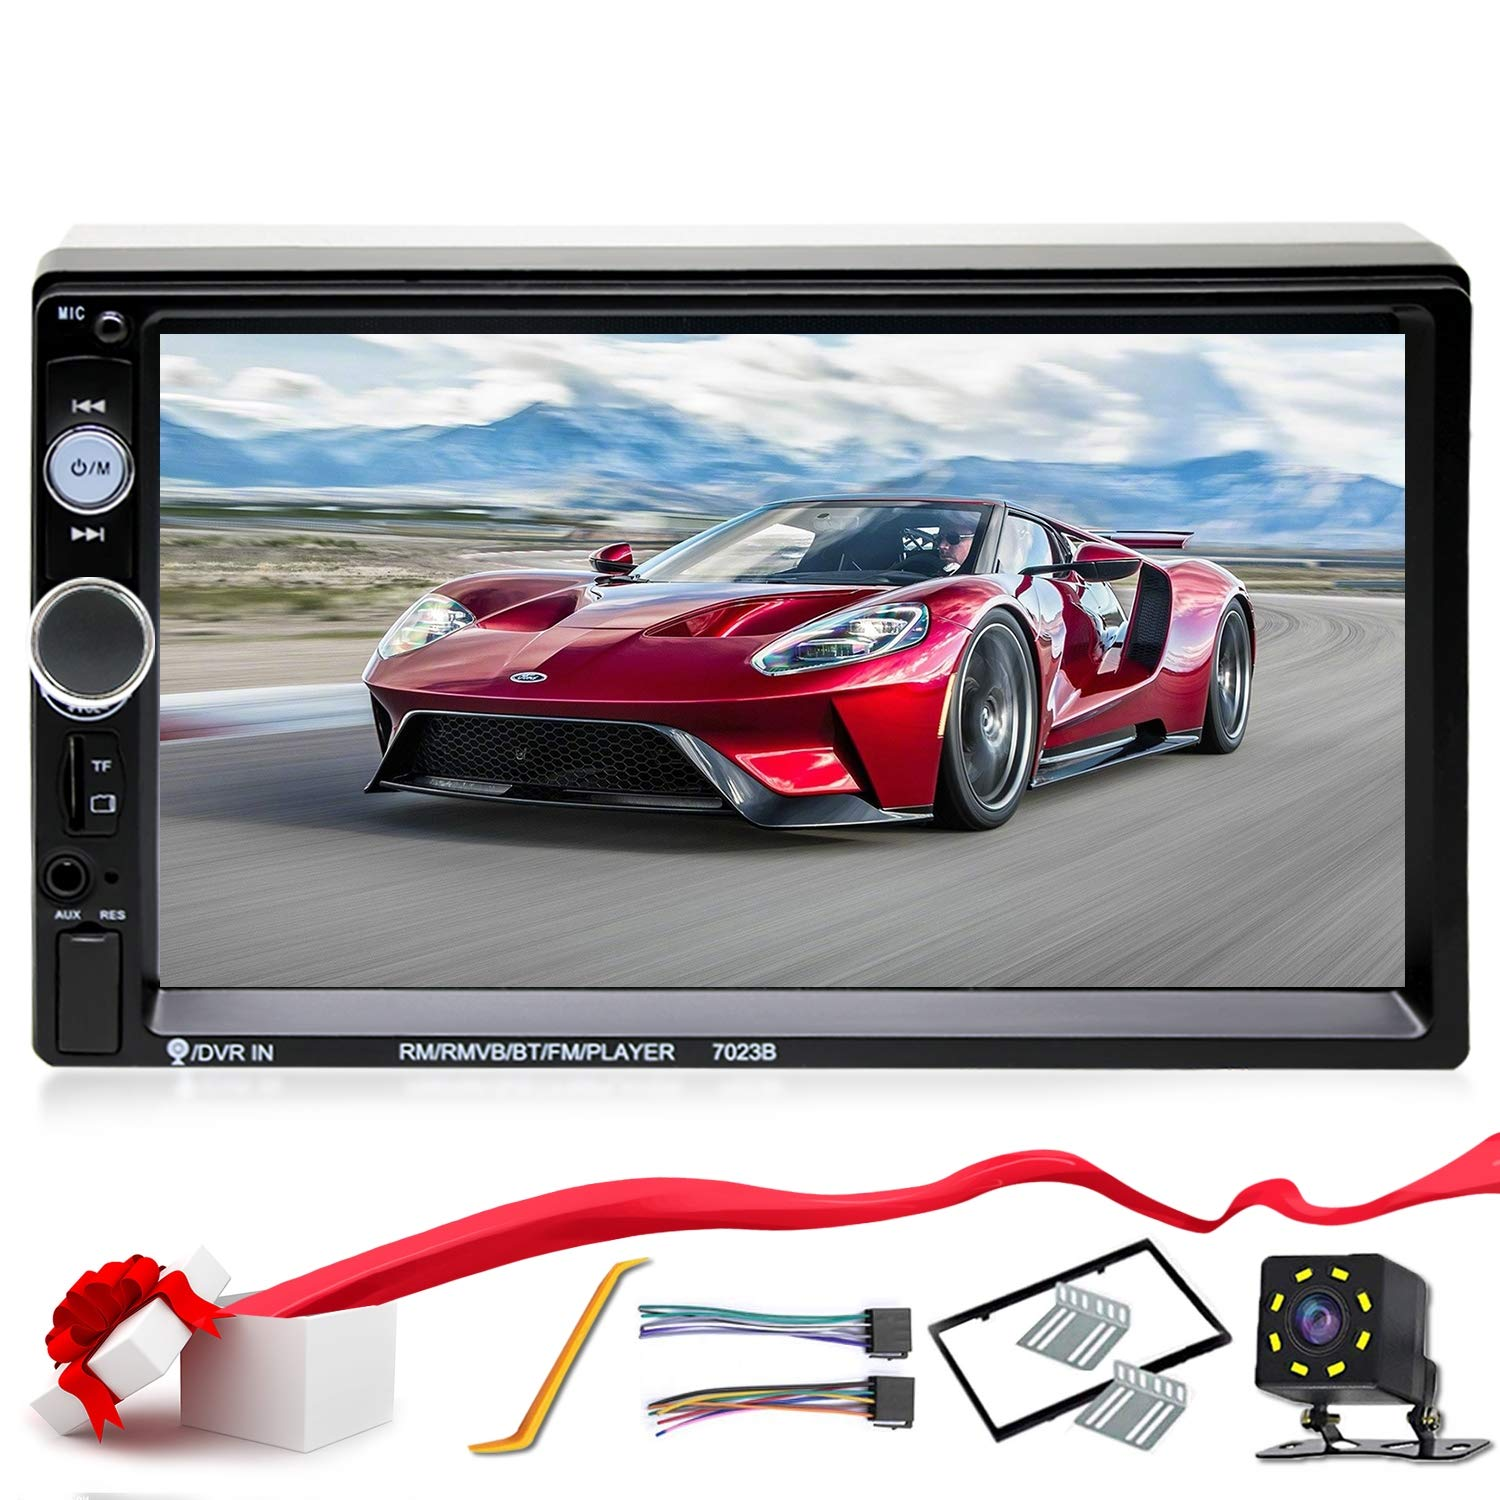 7/'/' Stereo Touch Screen Double Din Radio with Bluetooth FM Radio MP3 MP5//TF//USB//AUX,Remote Control,Rear View Camera